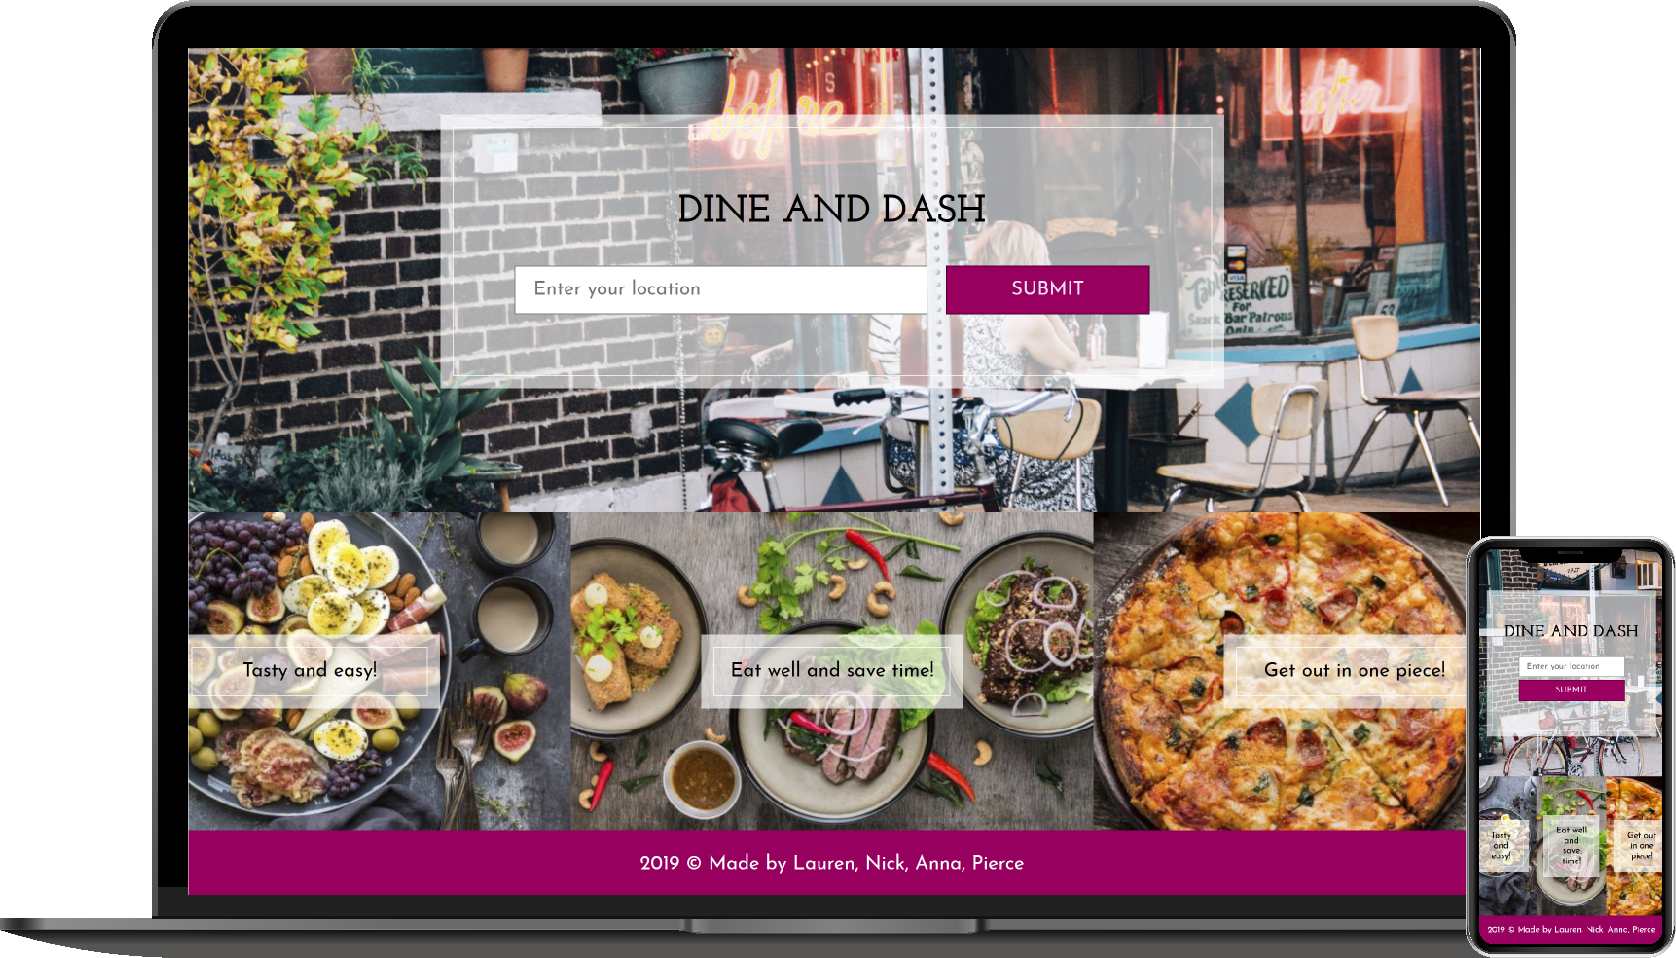 Screenshot of the Dine and Dash application